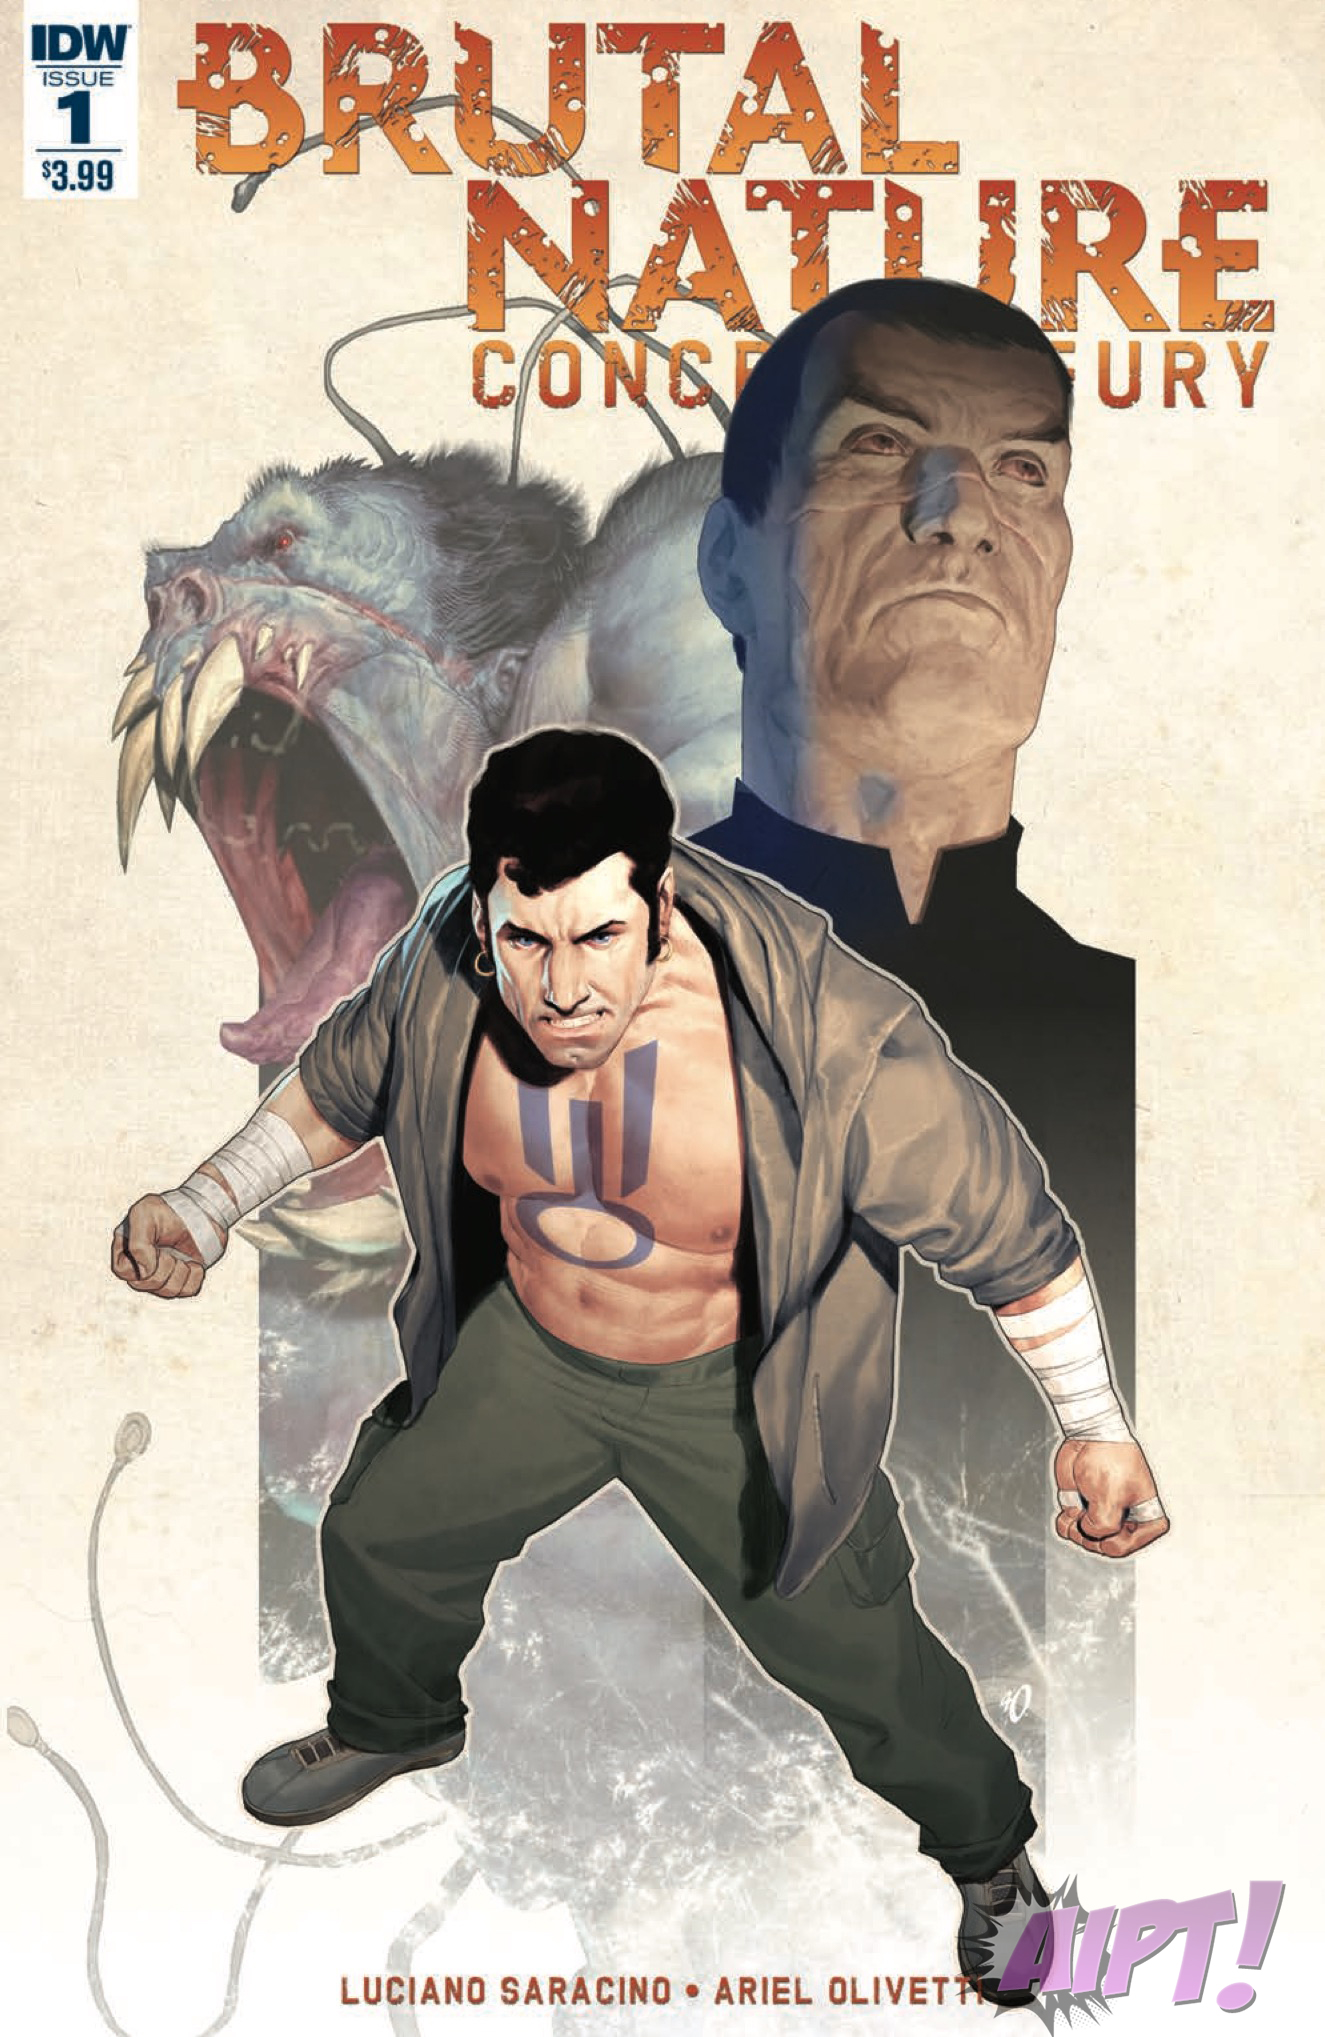 [EXCLUSIVE] IDW Preview: Brutal Nature: Concrete Fury #1